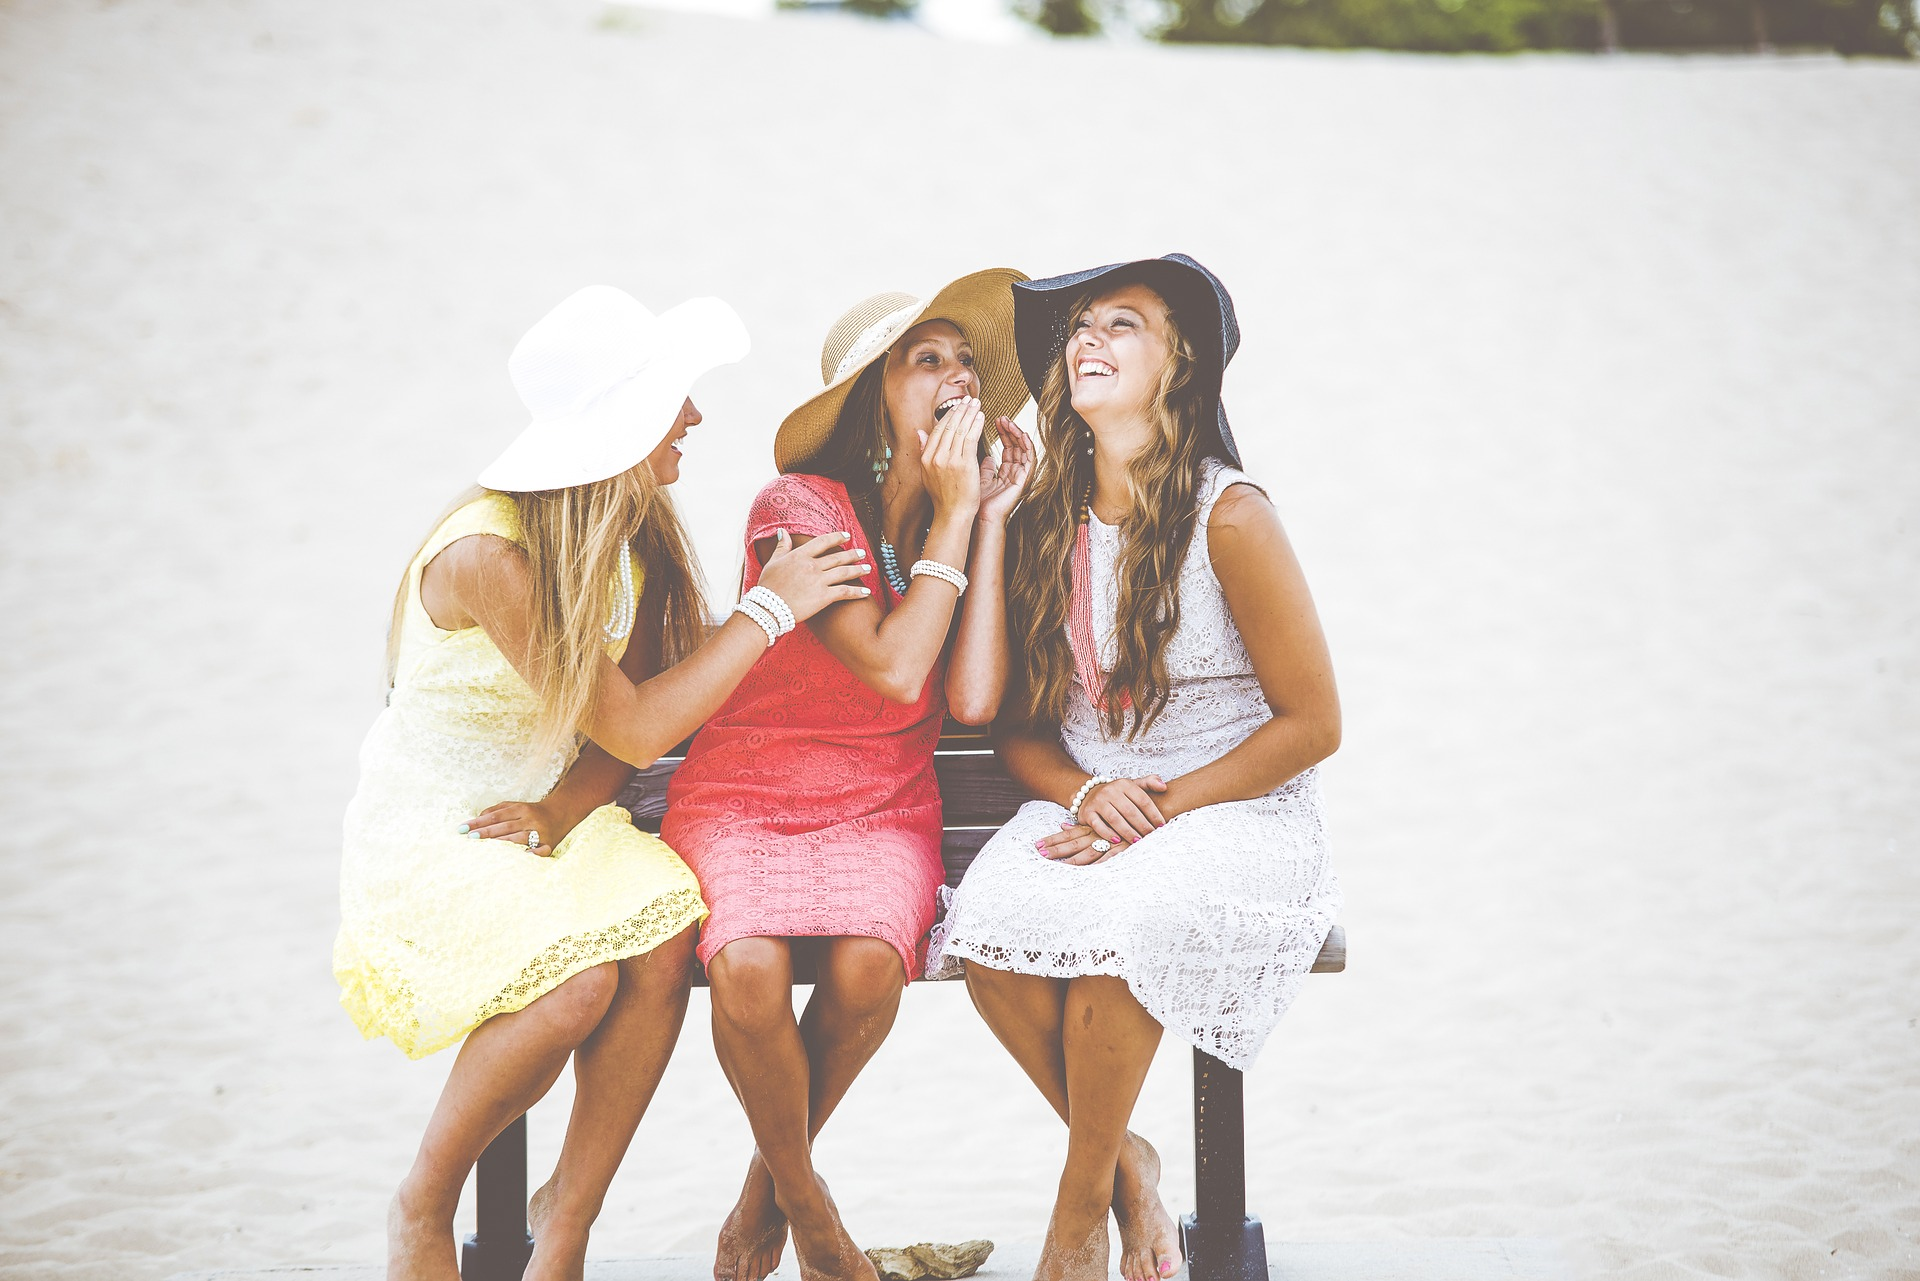 Friendships increase our sense of belonging and purpose